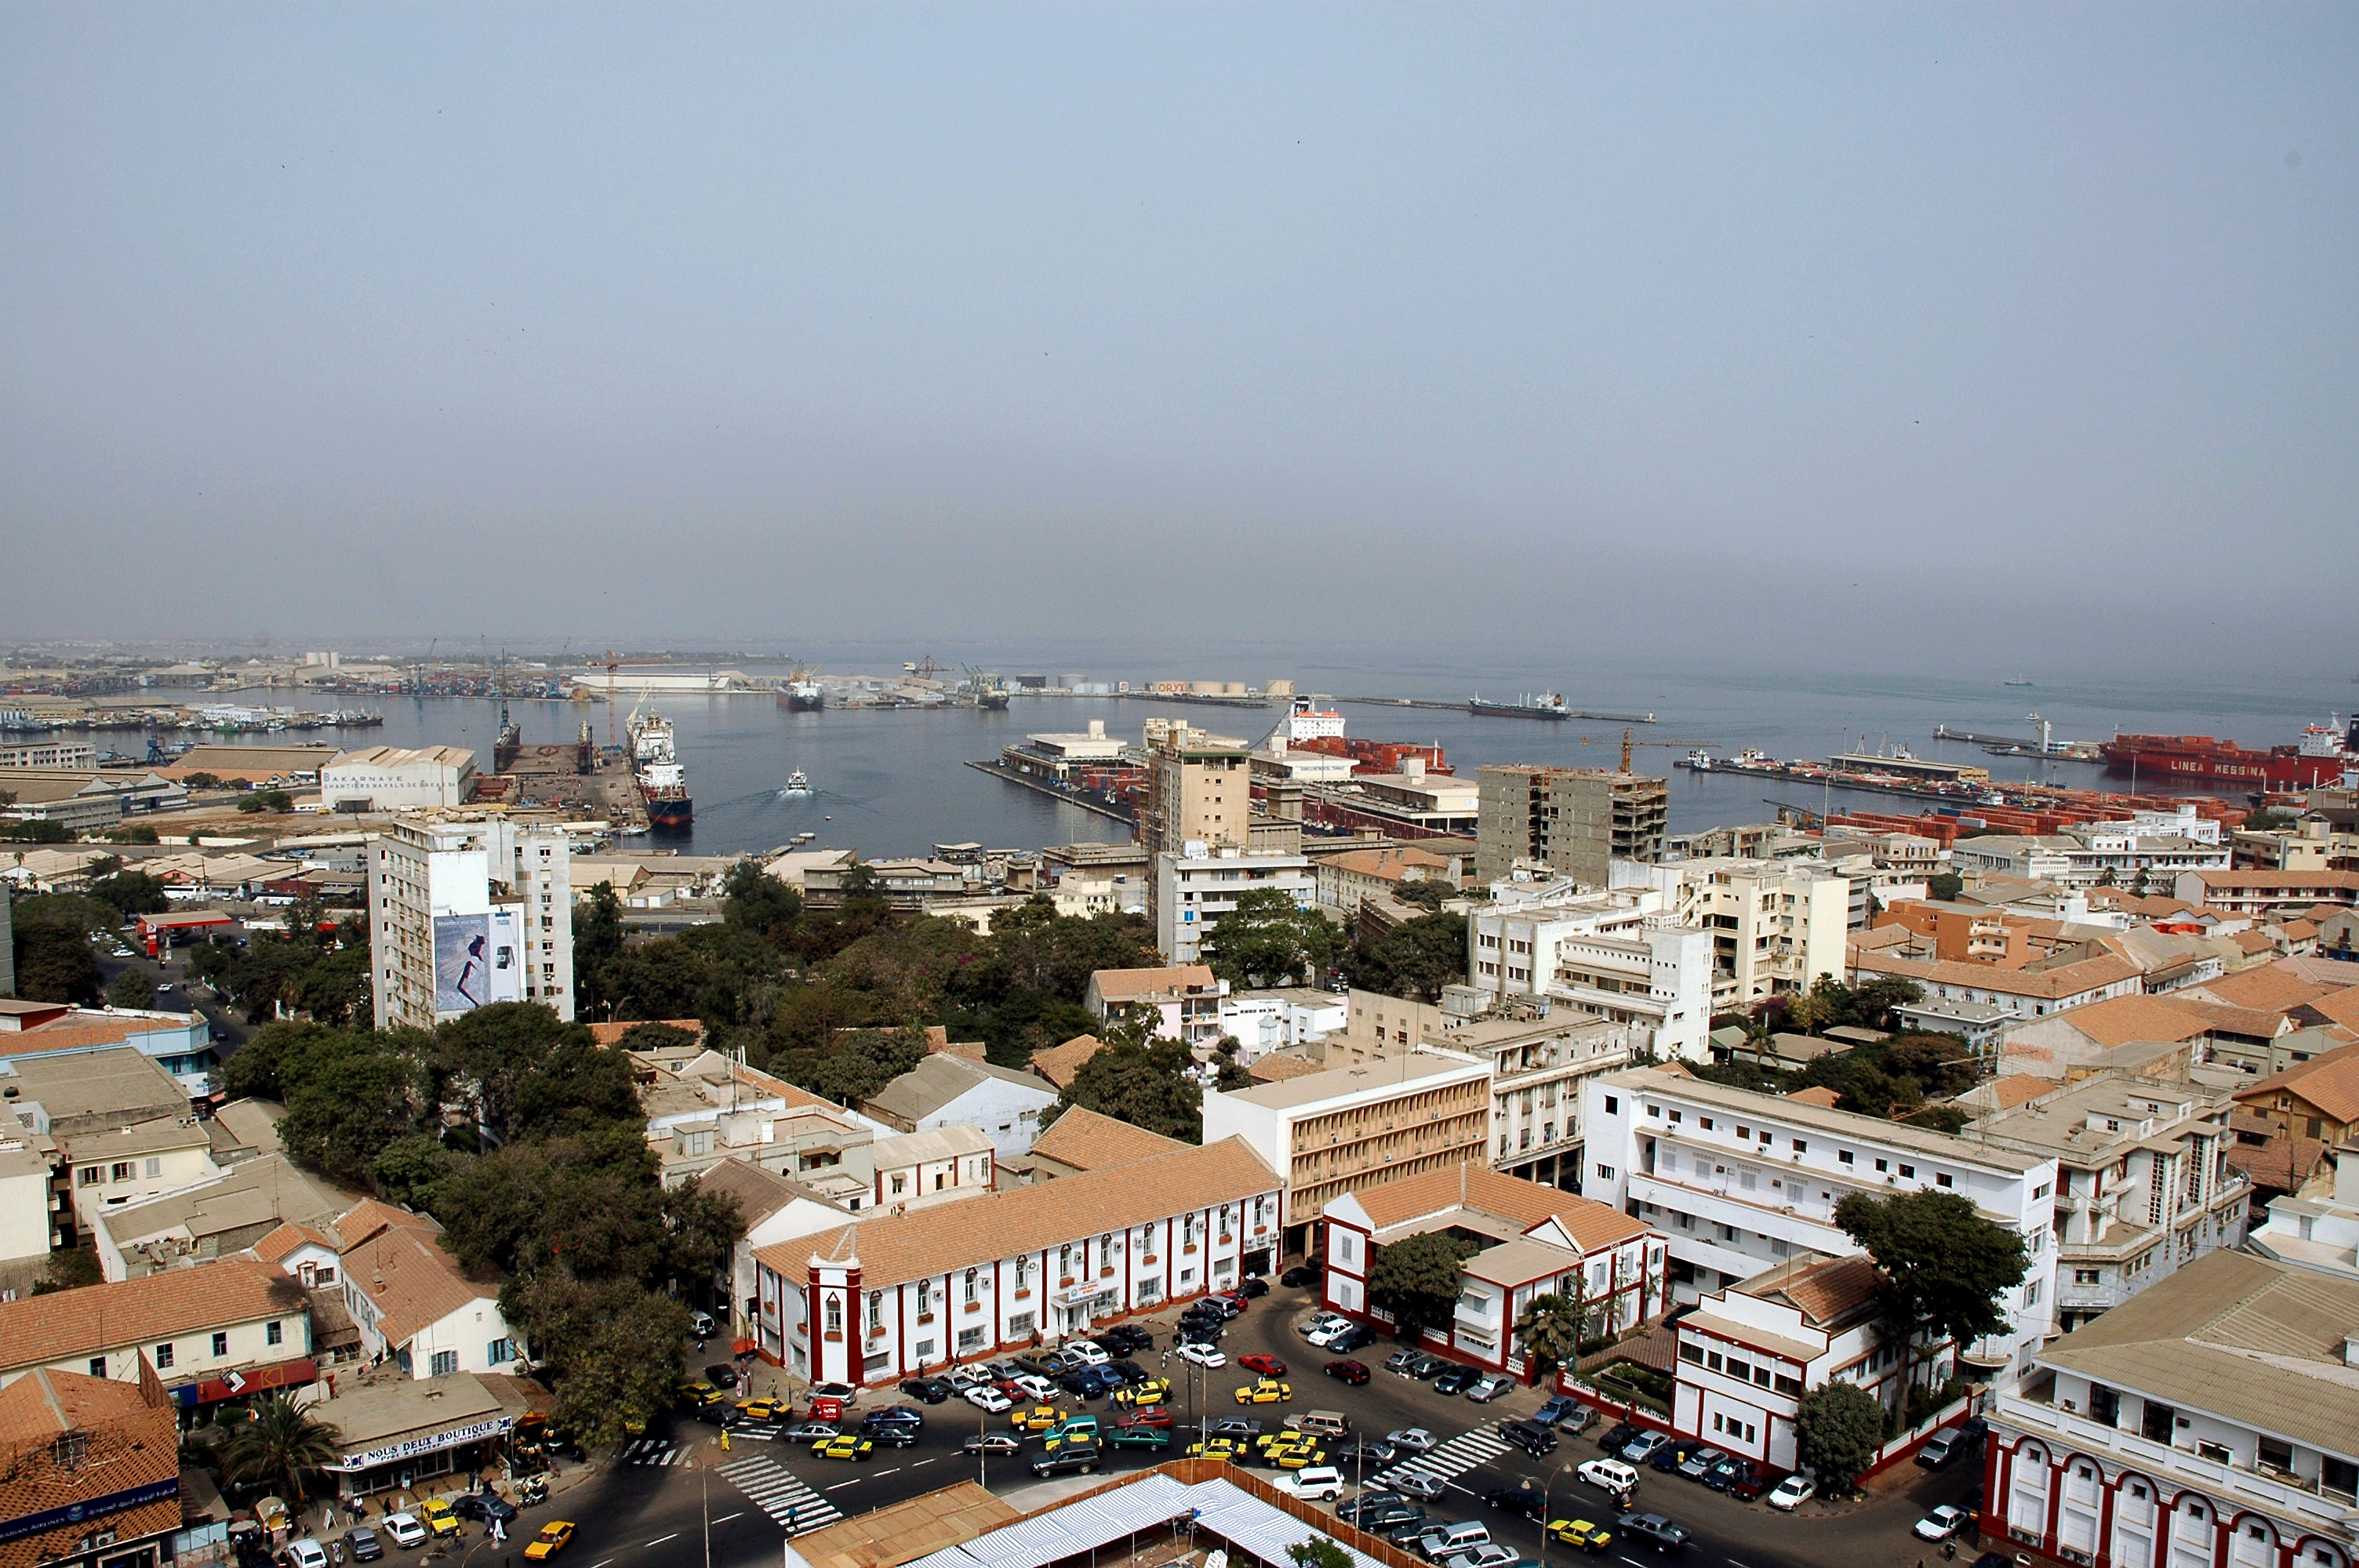 The port of Dakar, Senegal